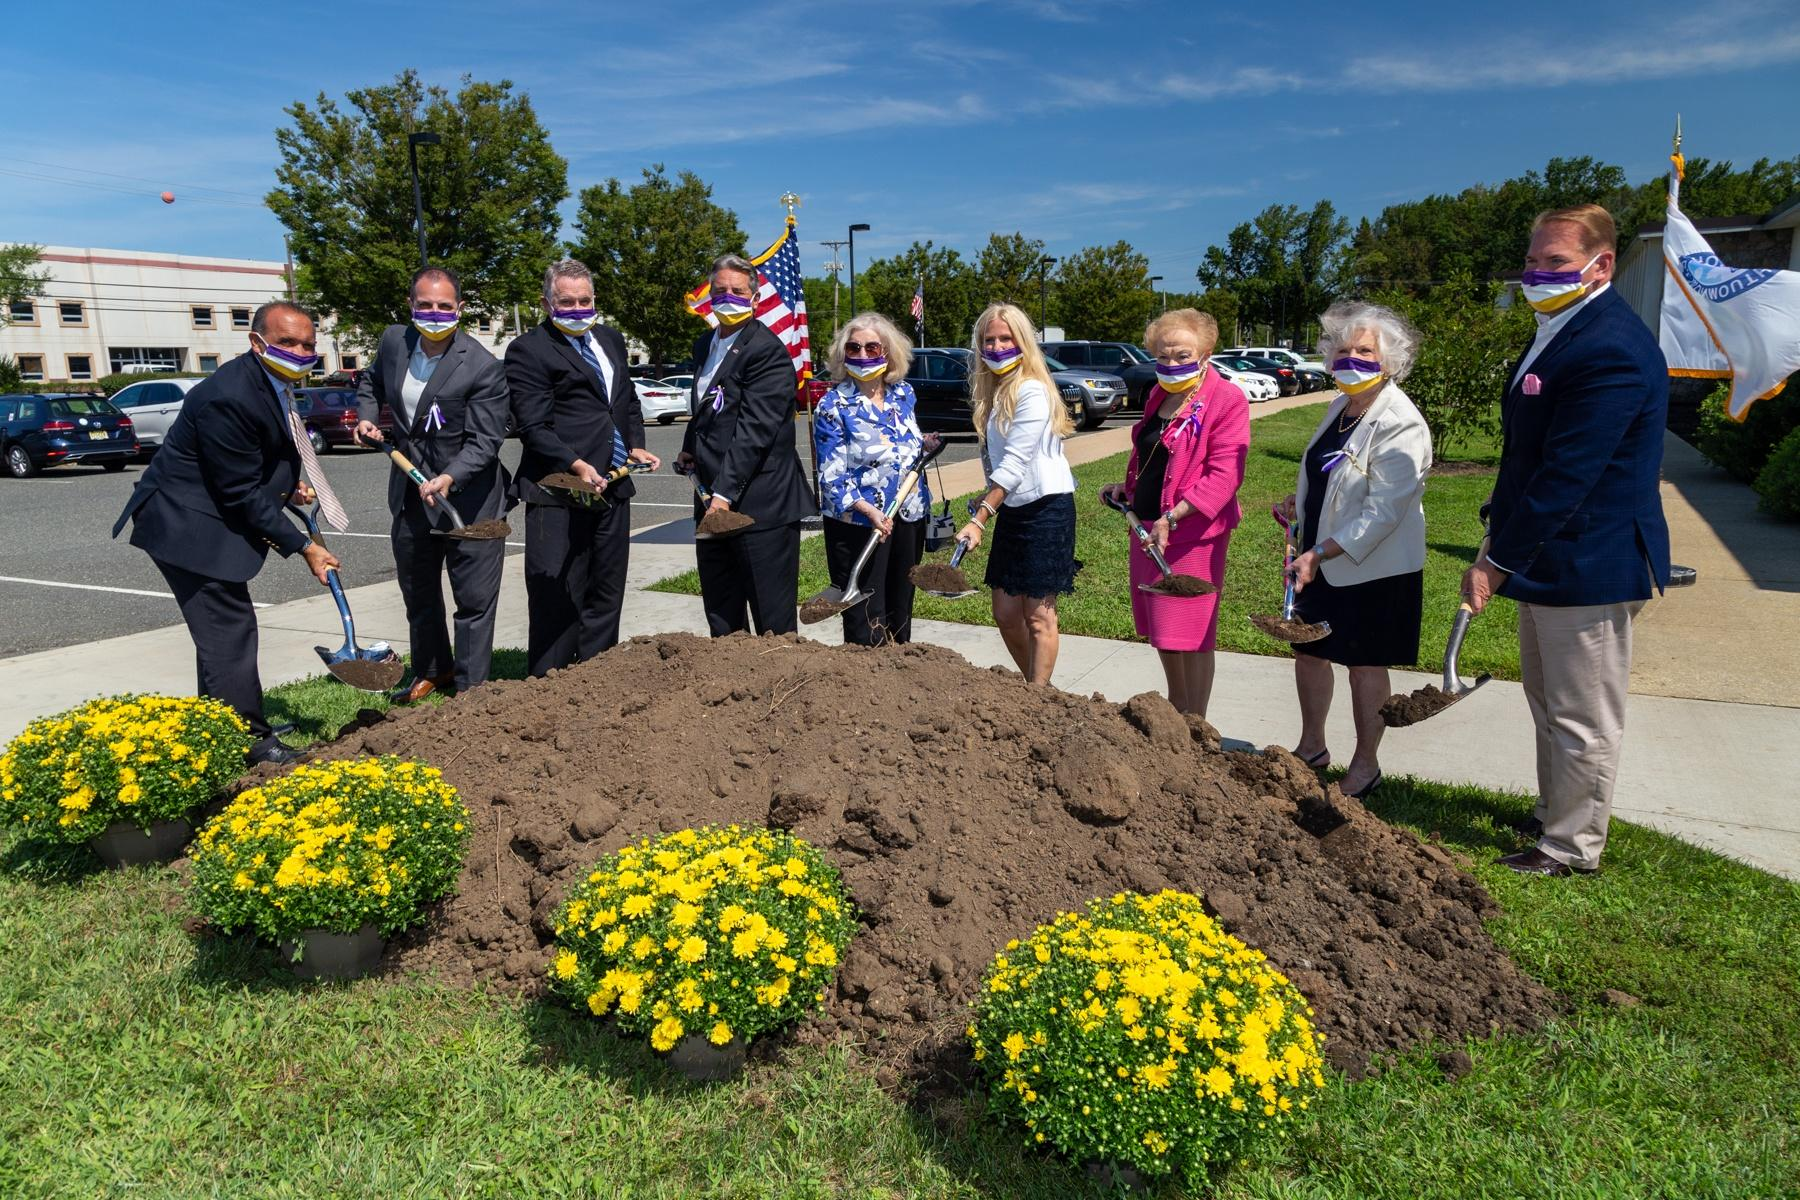 featured image for: <center>COUNTY CLERK HANLON AND COUNTY BOARD OF CHOSEN FREEHOLDERS BREAK GROUND ON 19TH AMENDMENT CENTENNIAL COMMEMORATIVE GARDEN </center>